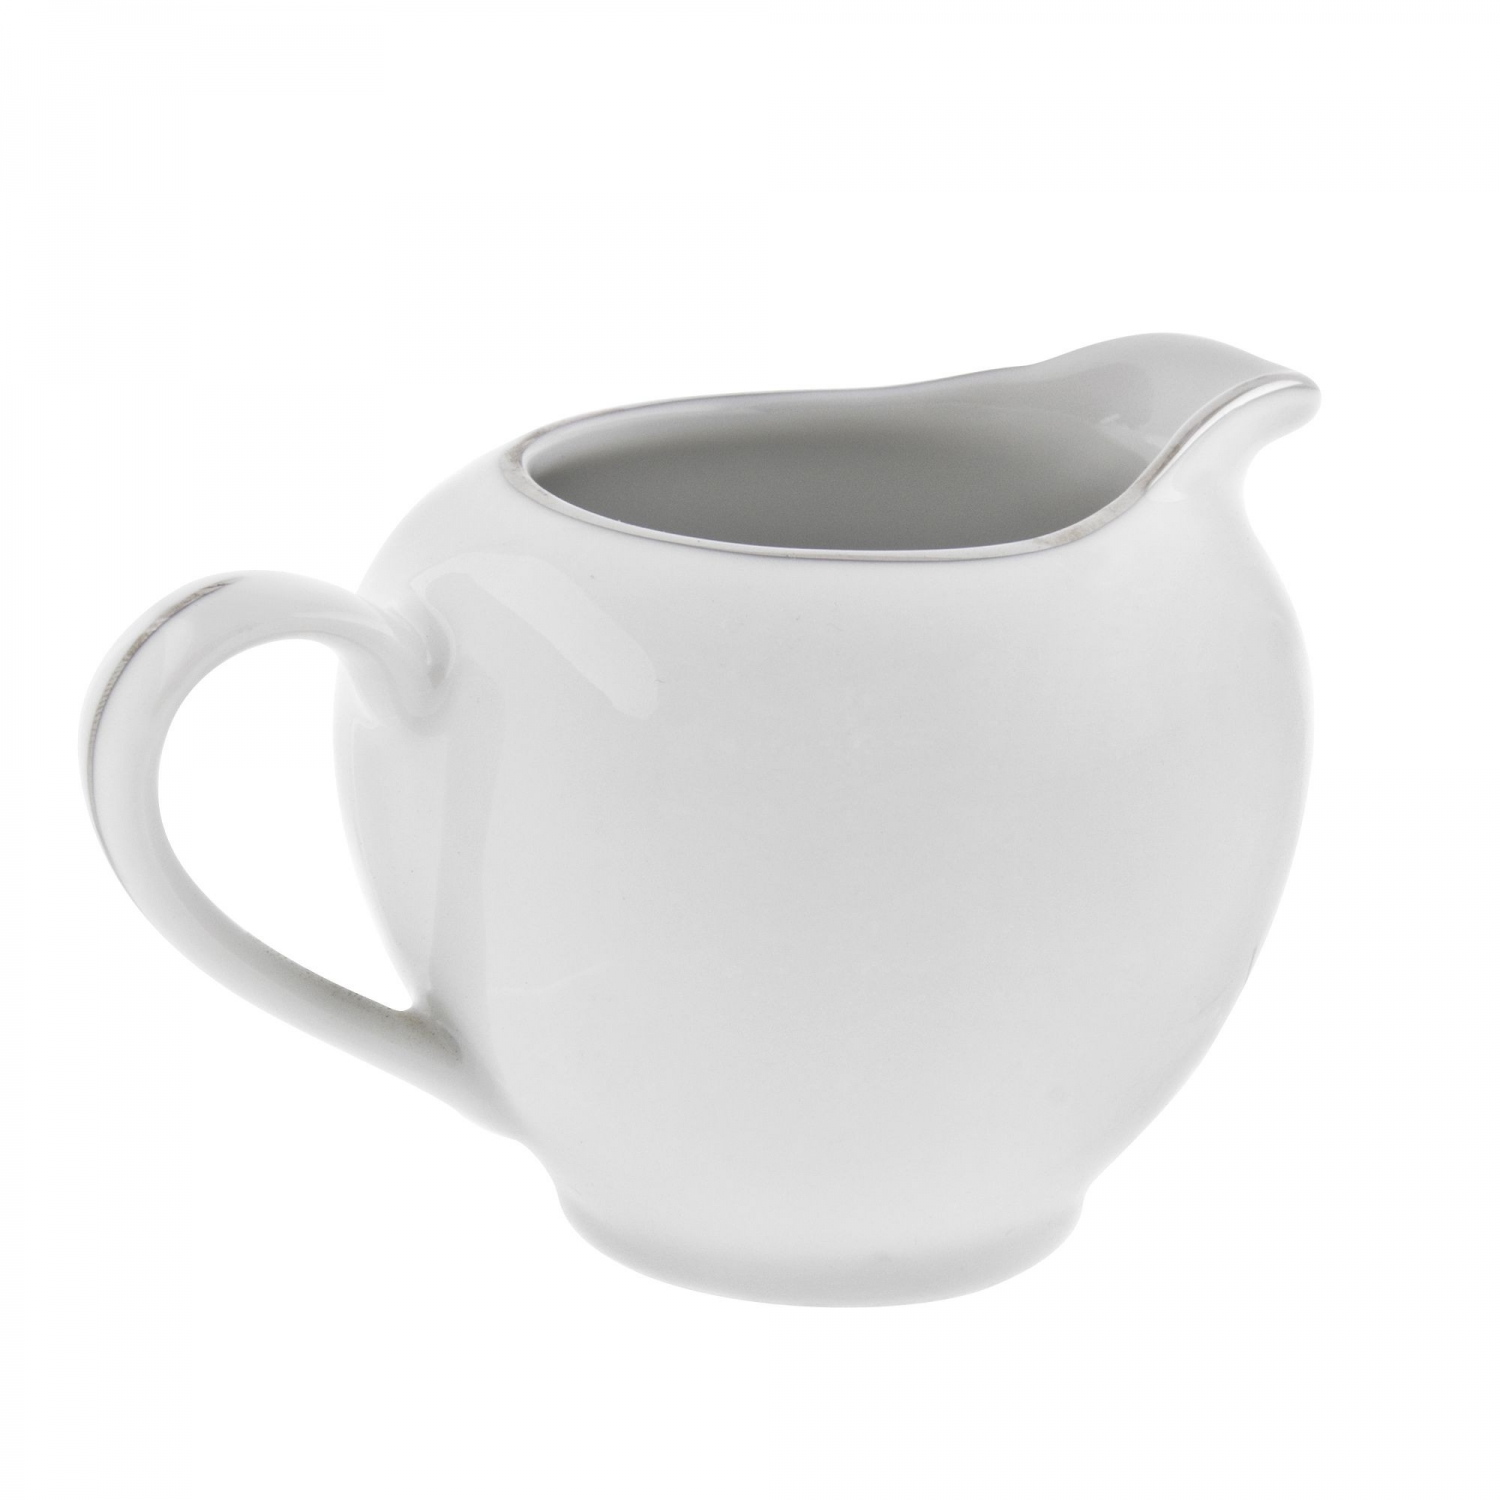 10 Strawberry Street SL0016 Silver Line Creamer 8 oz.